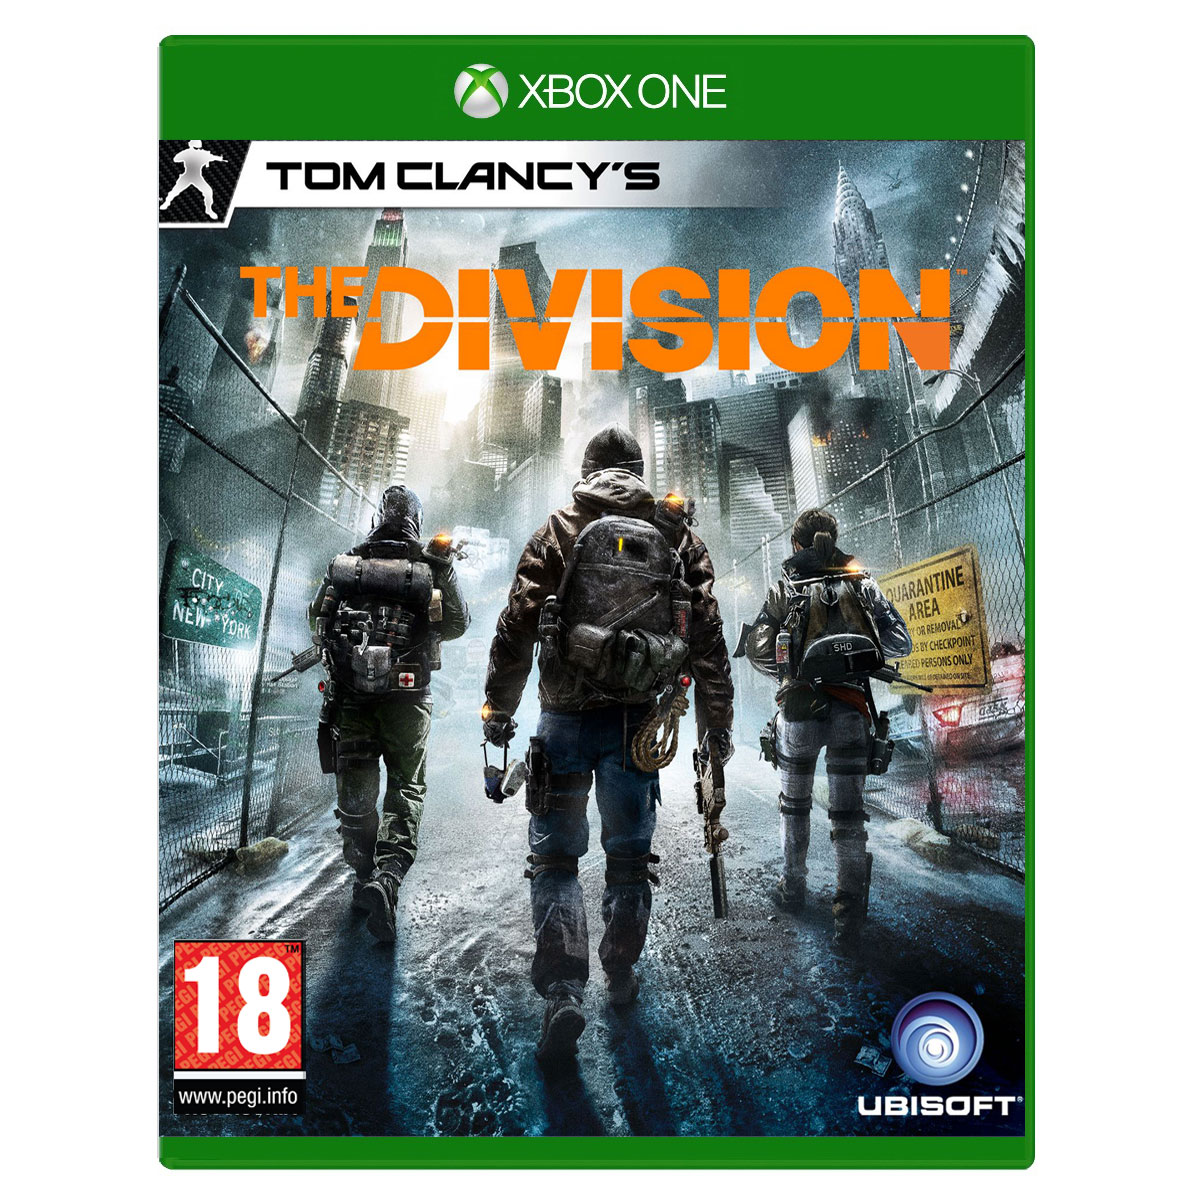 tom clancy 39 s the division xbox one jeux xbox one ubisoft sur ldlc. Black Bedroom Furniture Sets. Home Design Ideas